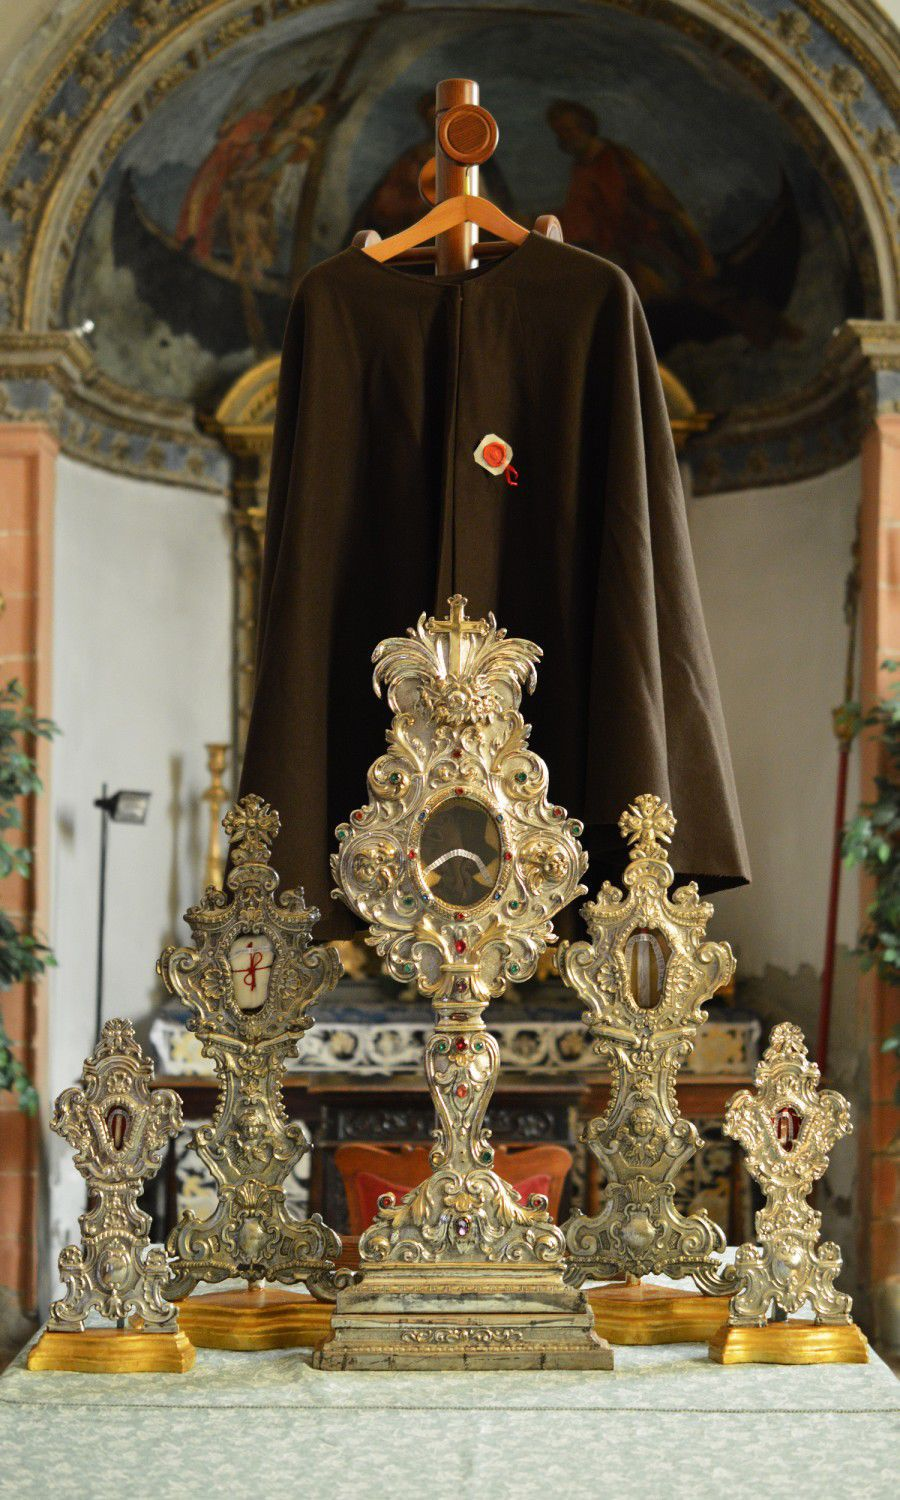 Unusual phenomena associated with the relics of the saints